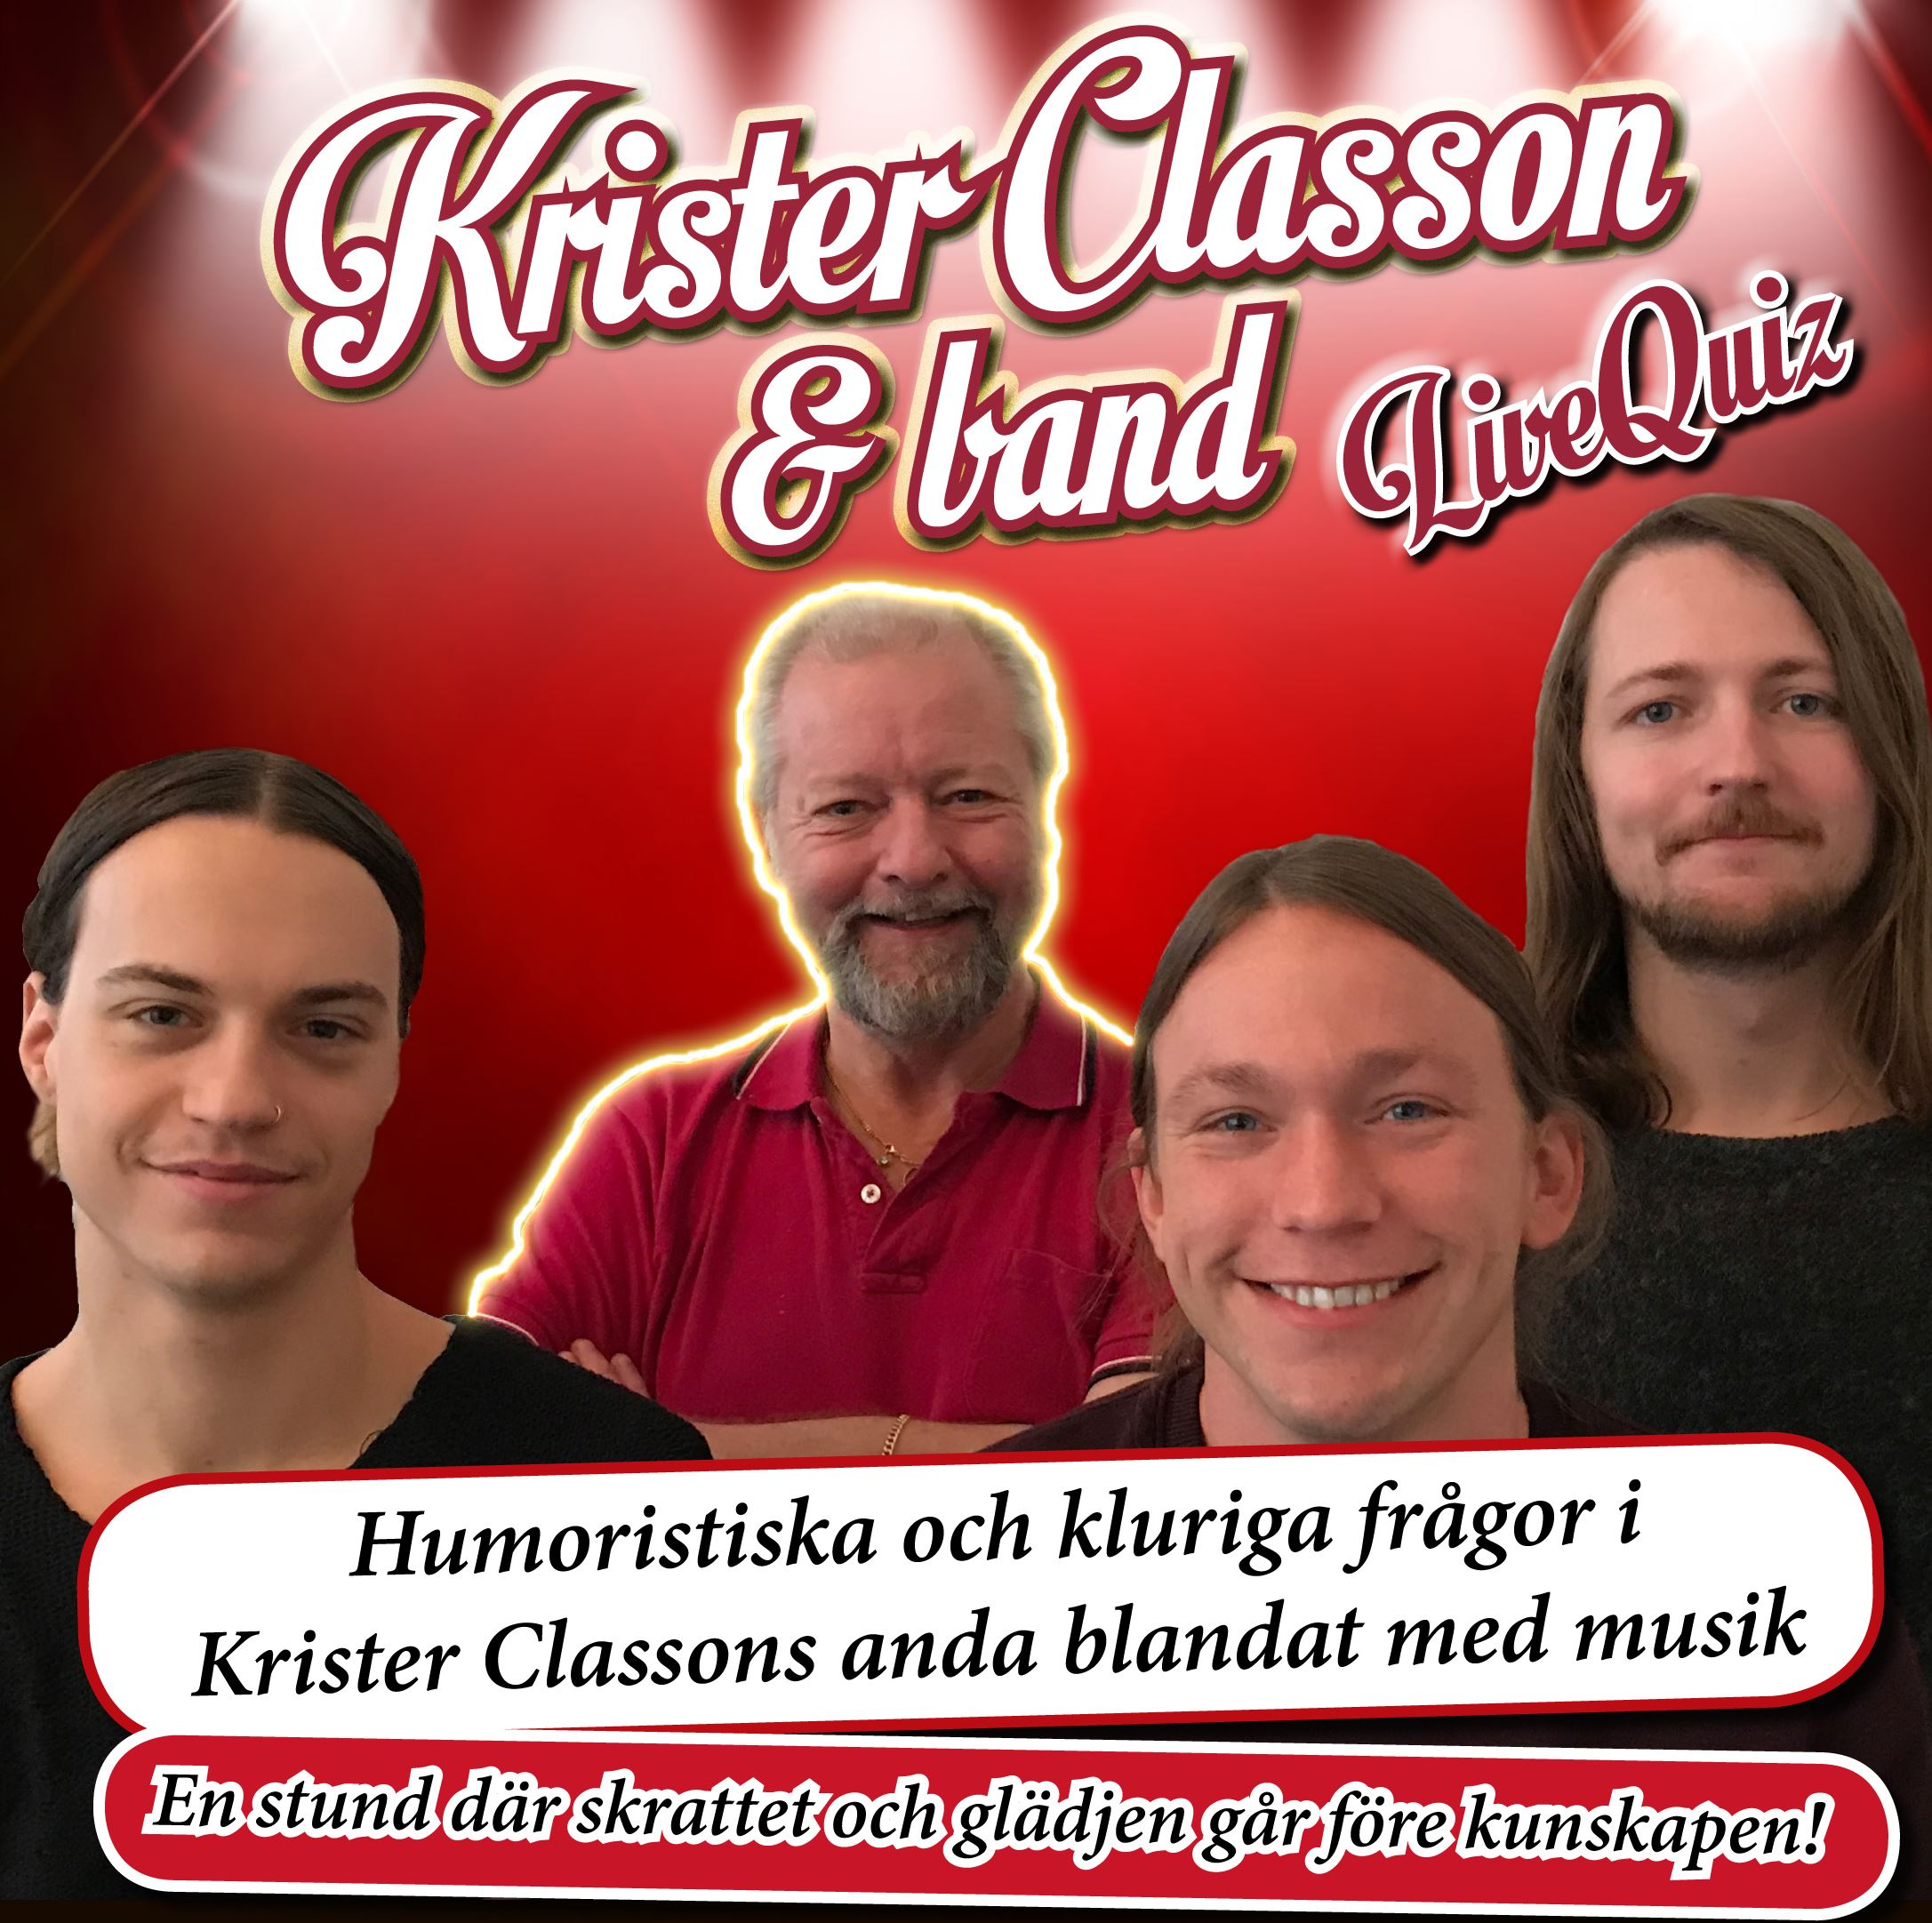 Krister Classon & band